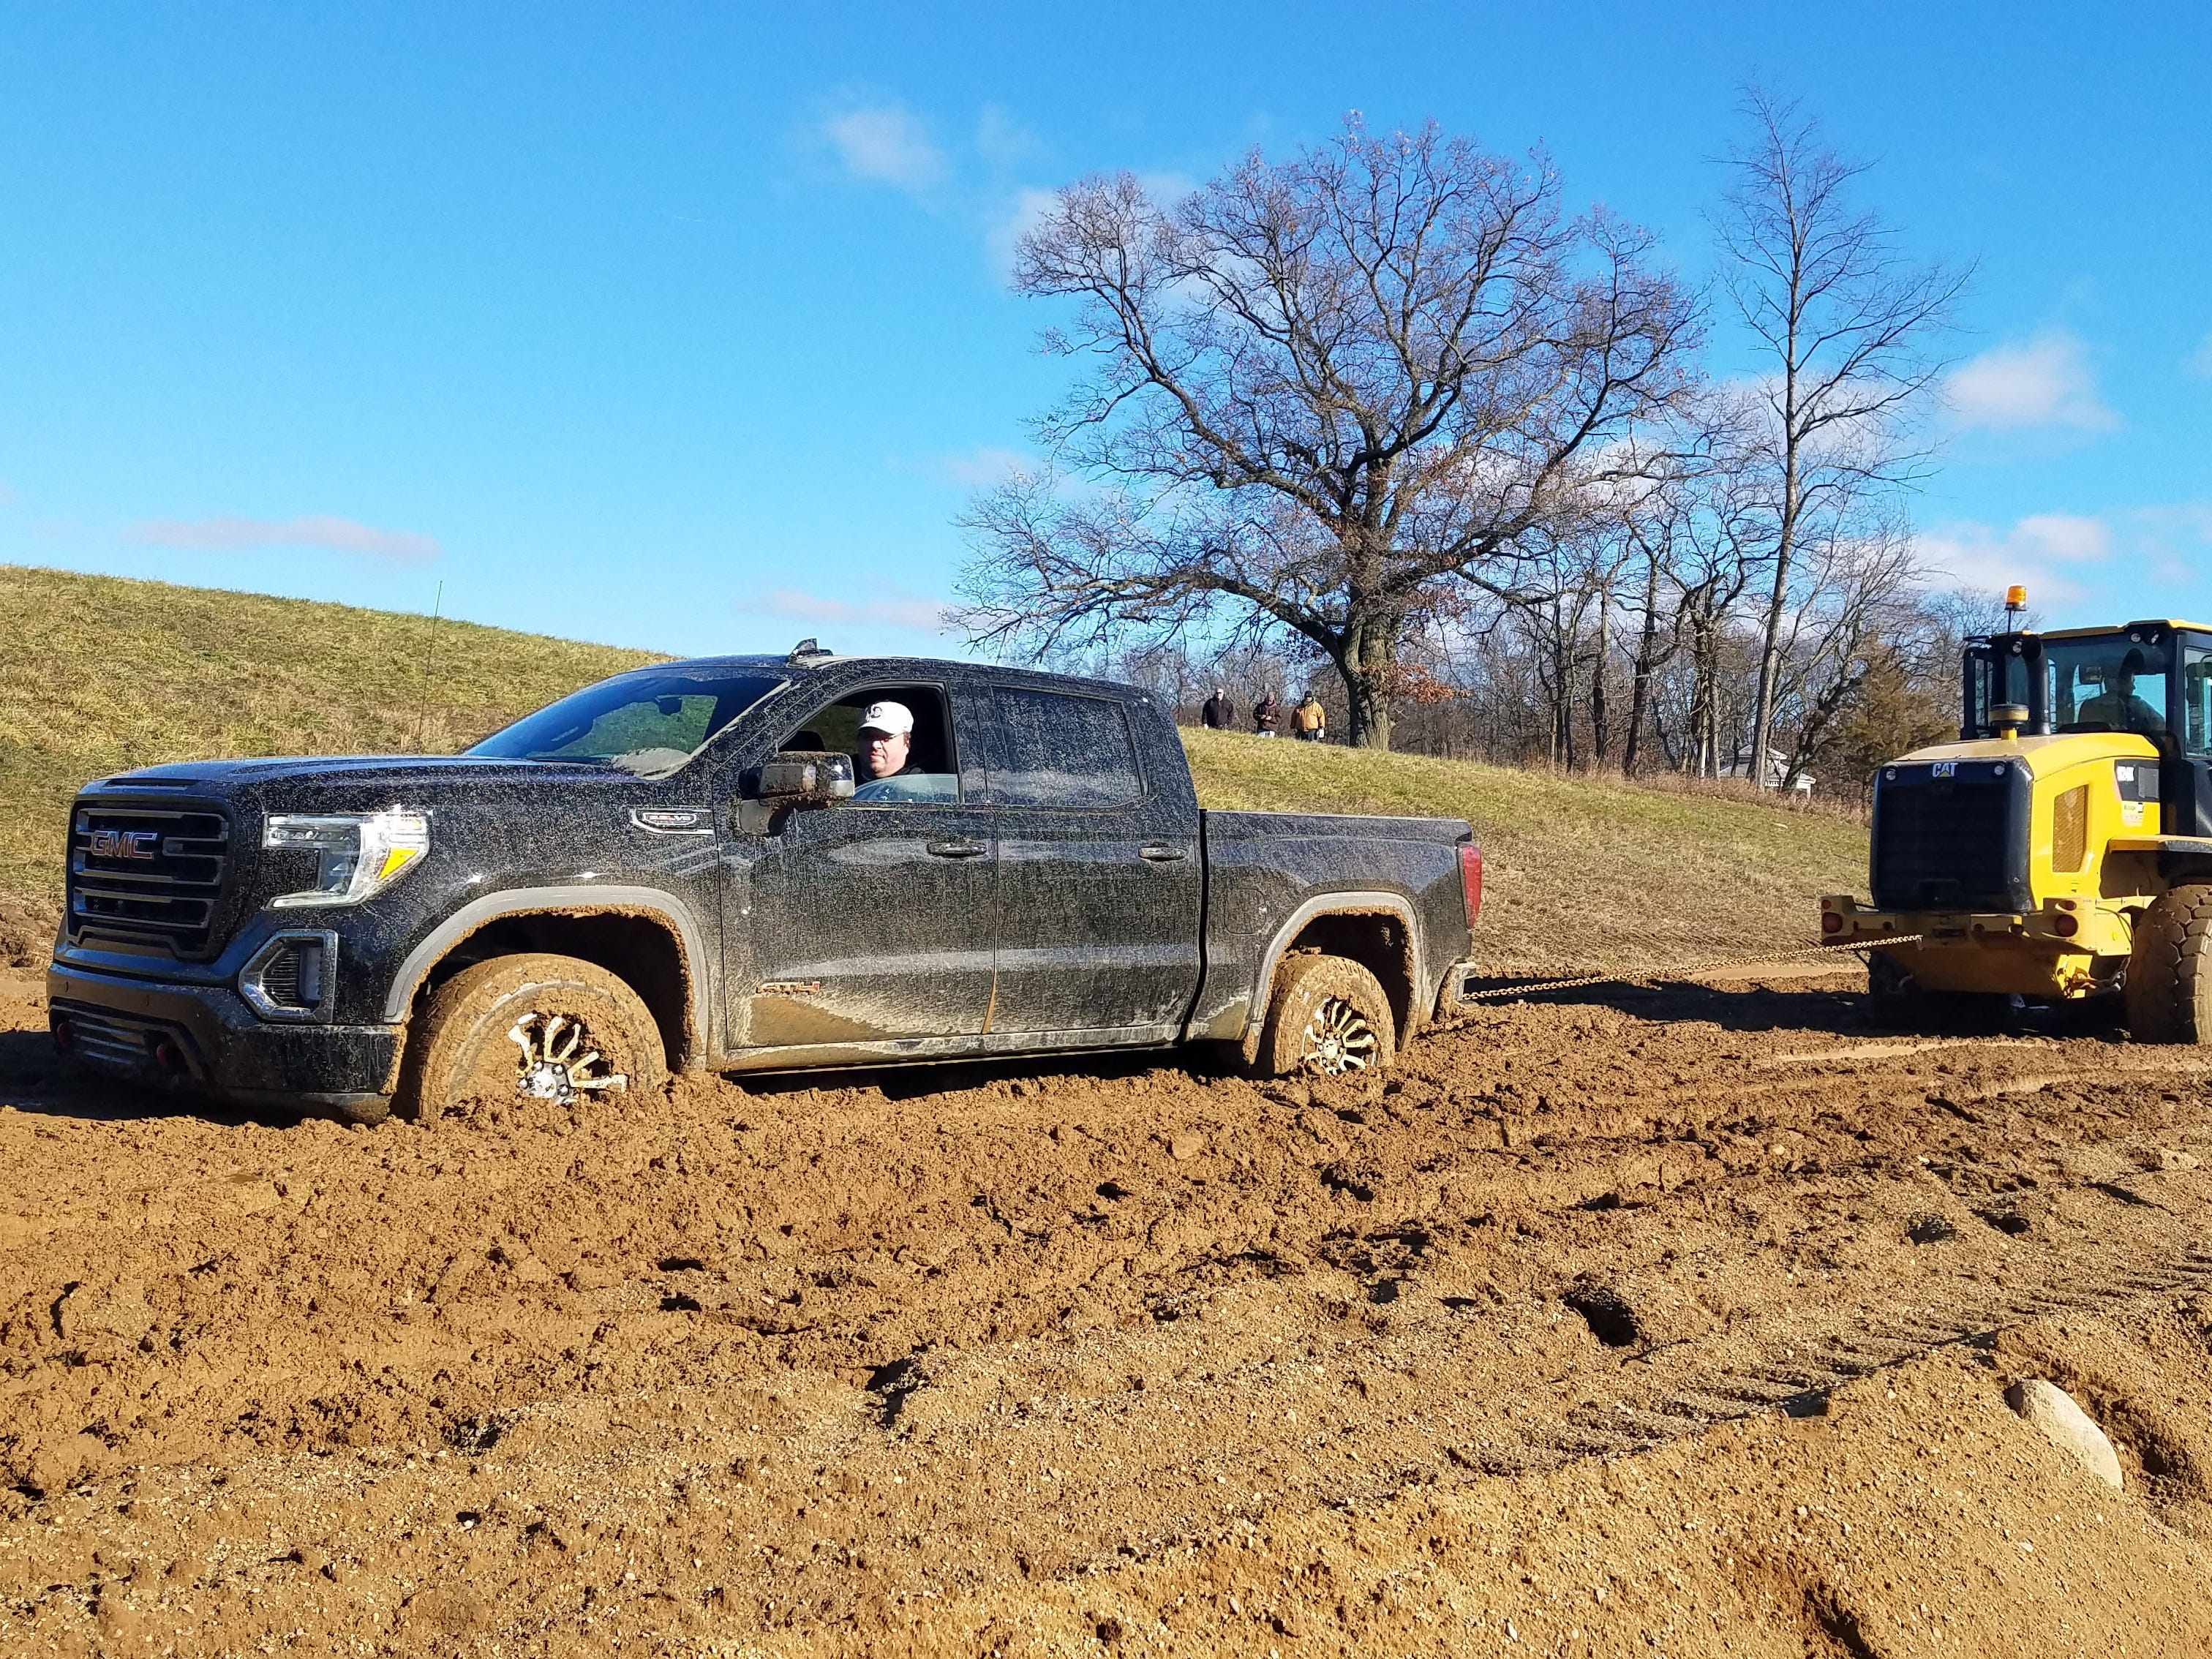 Even the GMC Sierra AT4 can get stuck in sand and mud. Be sure there's a handy Cat backhoe around to pull you out.